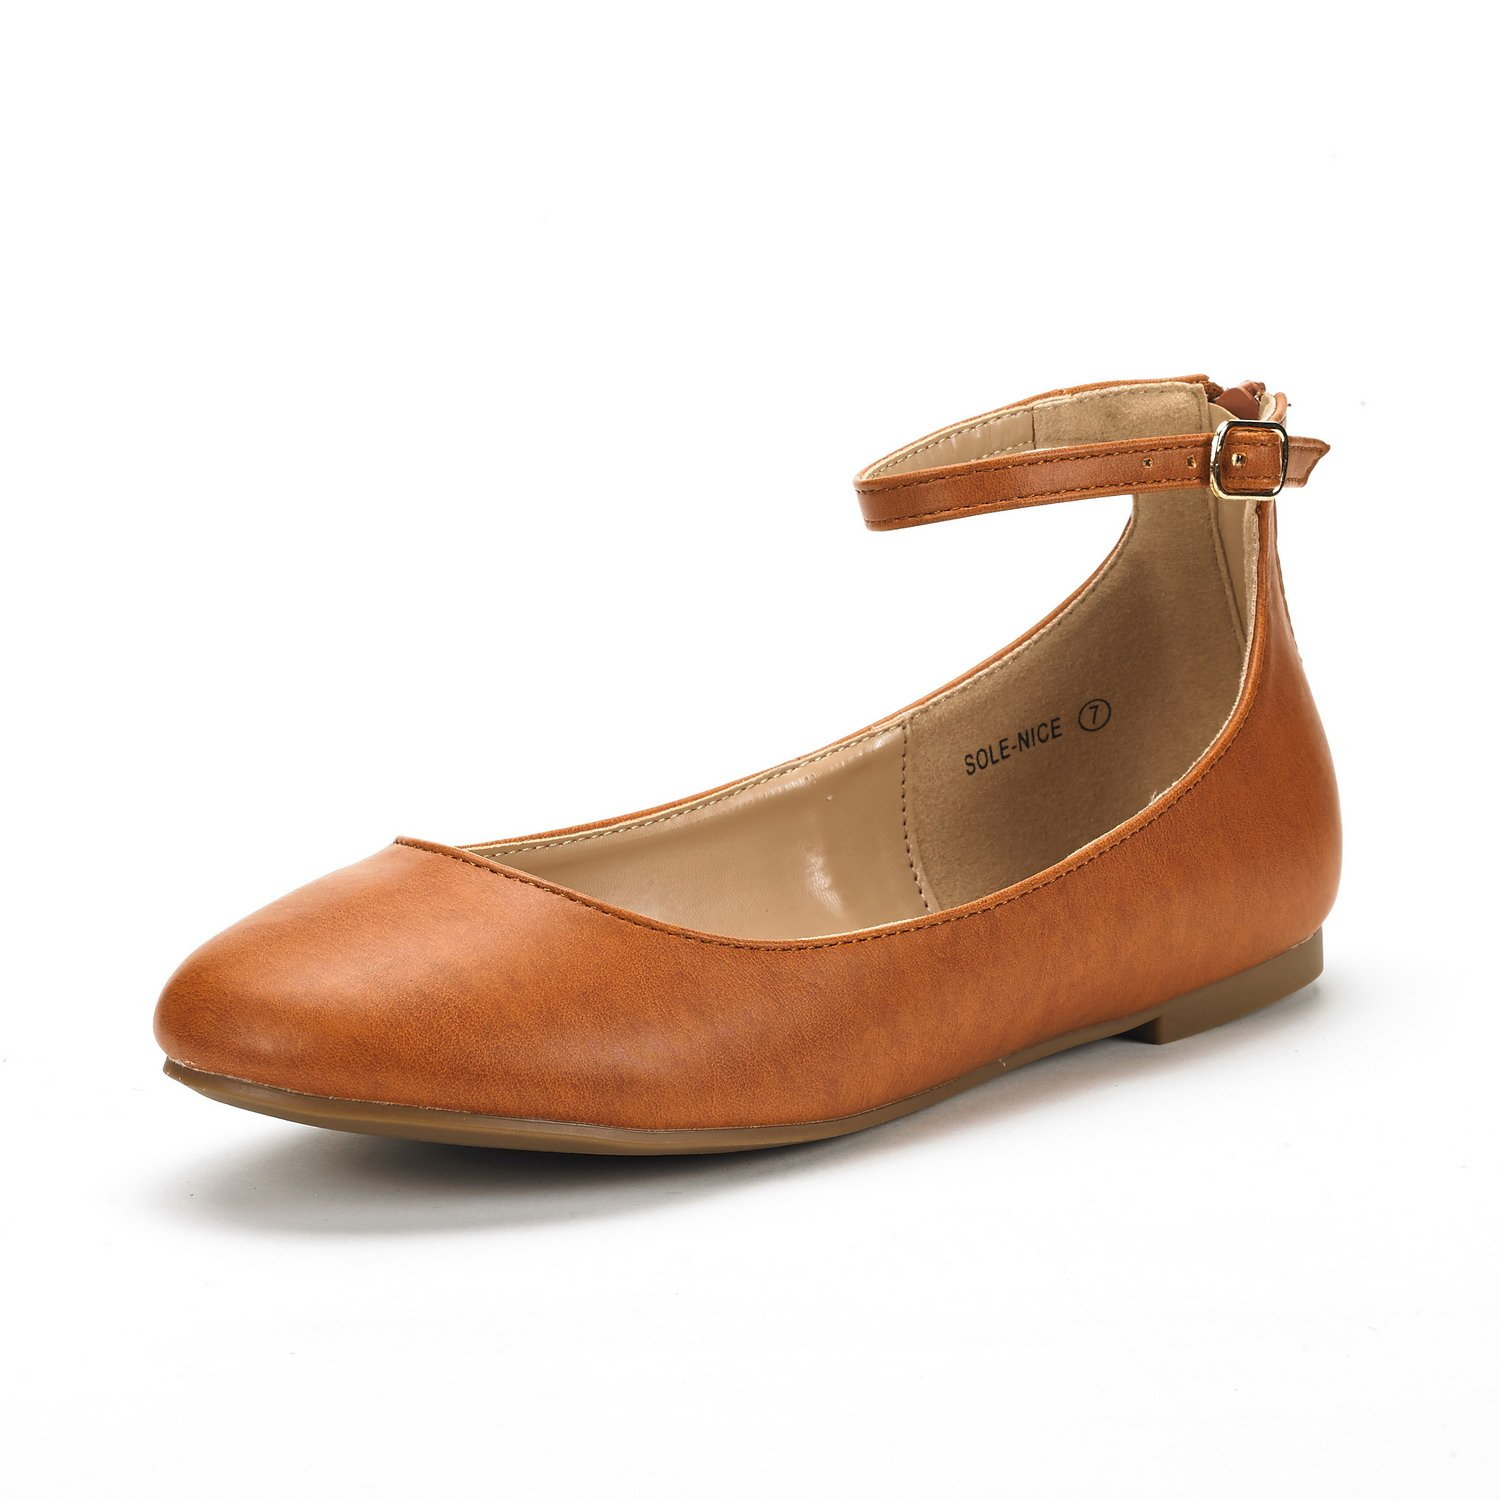 DREAM PAIRS Women's Sole-Nice Tan Pu Ankle Strap Walking Flats Shoes - 6.5 M US